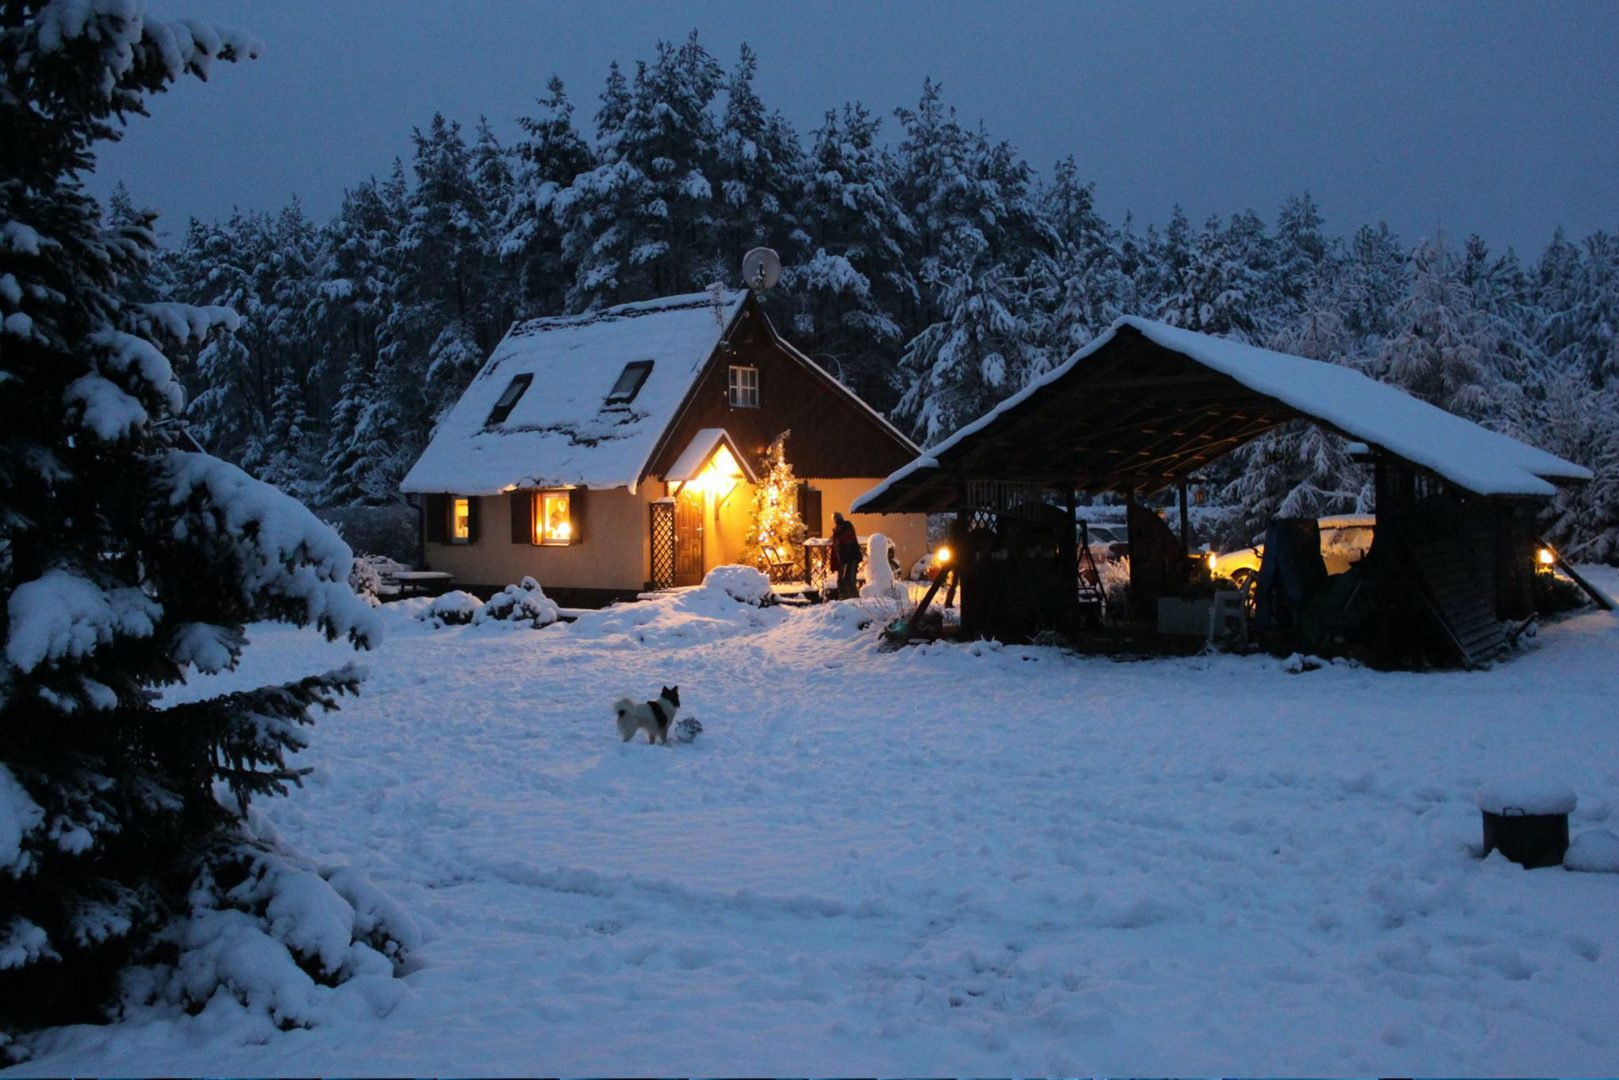 2 house in snow